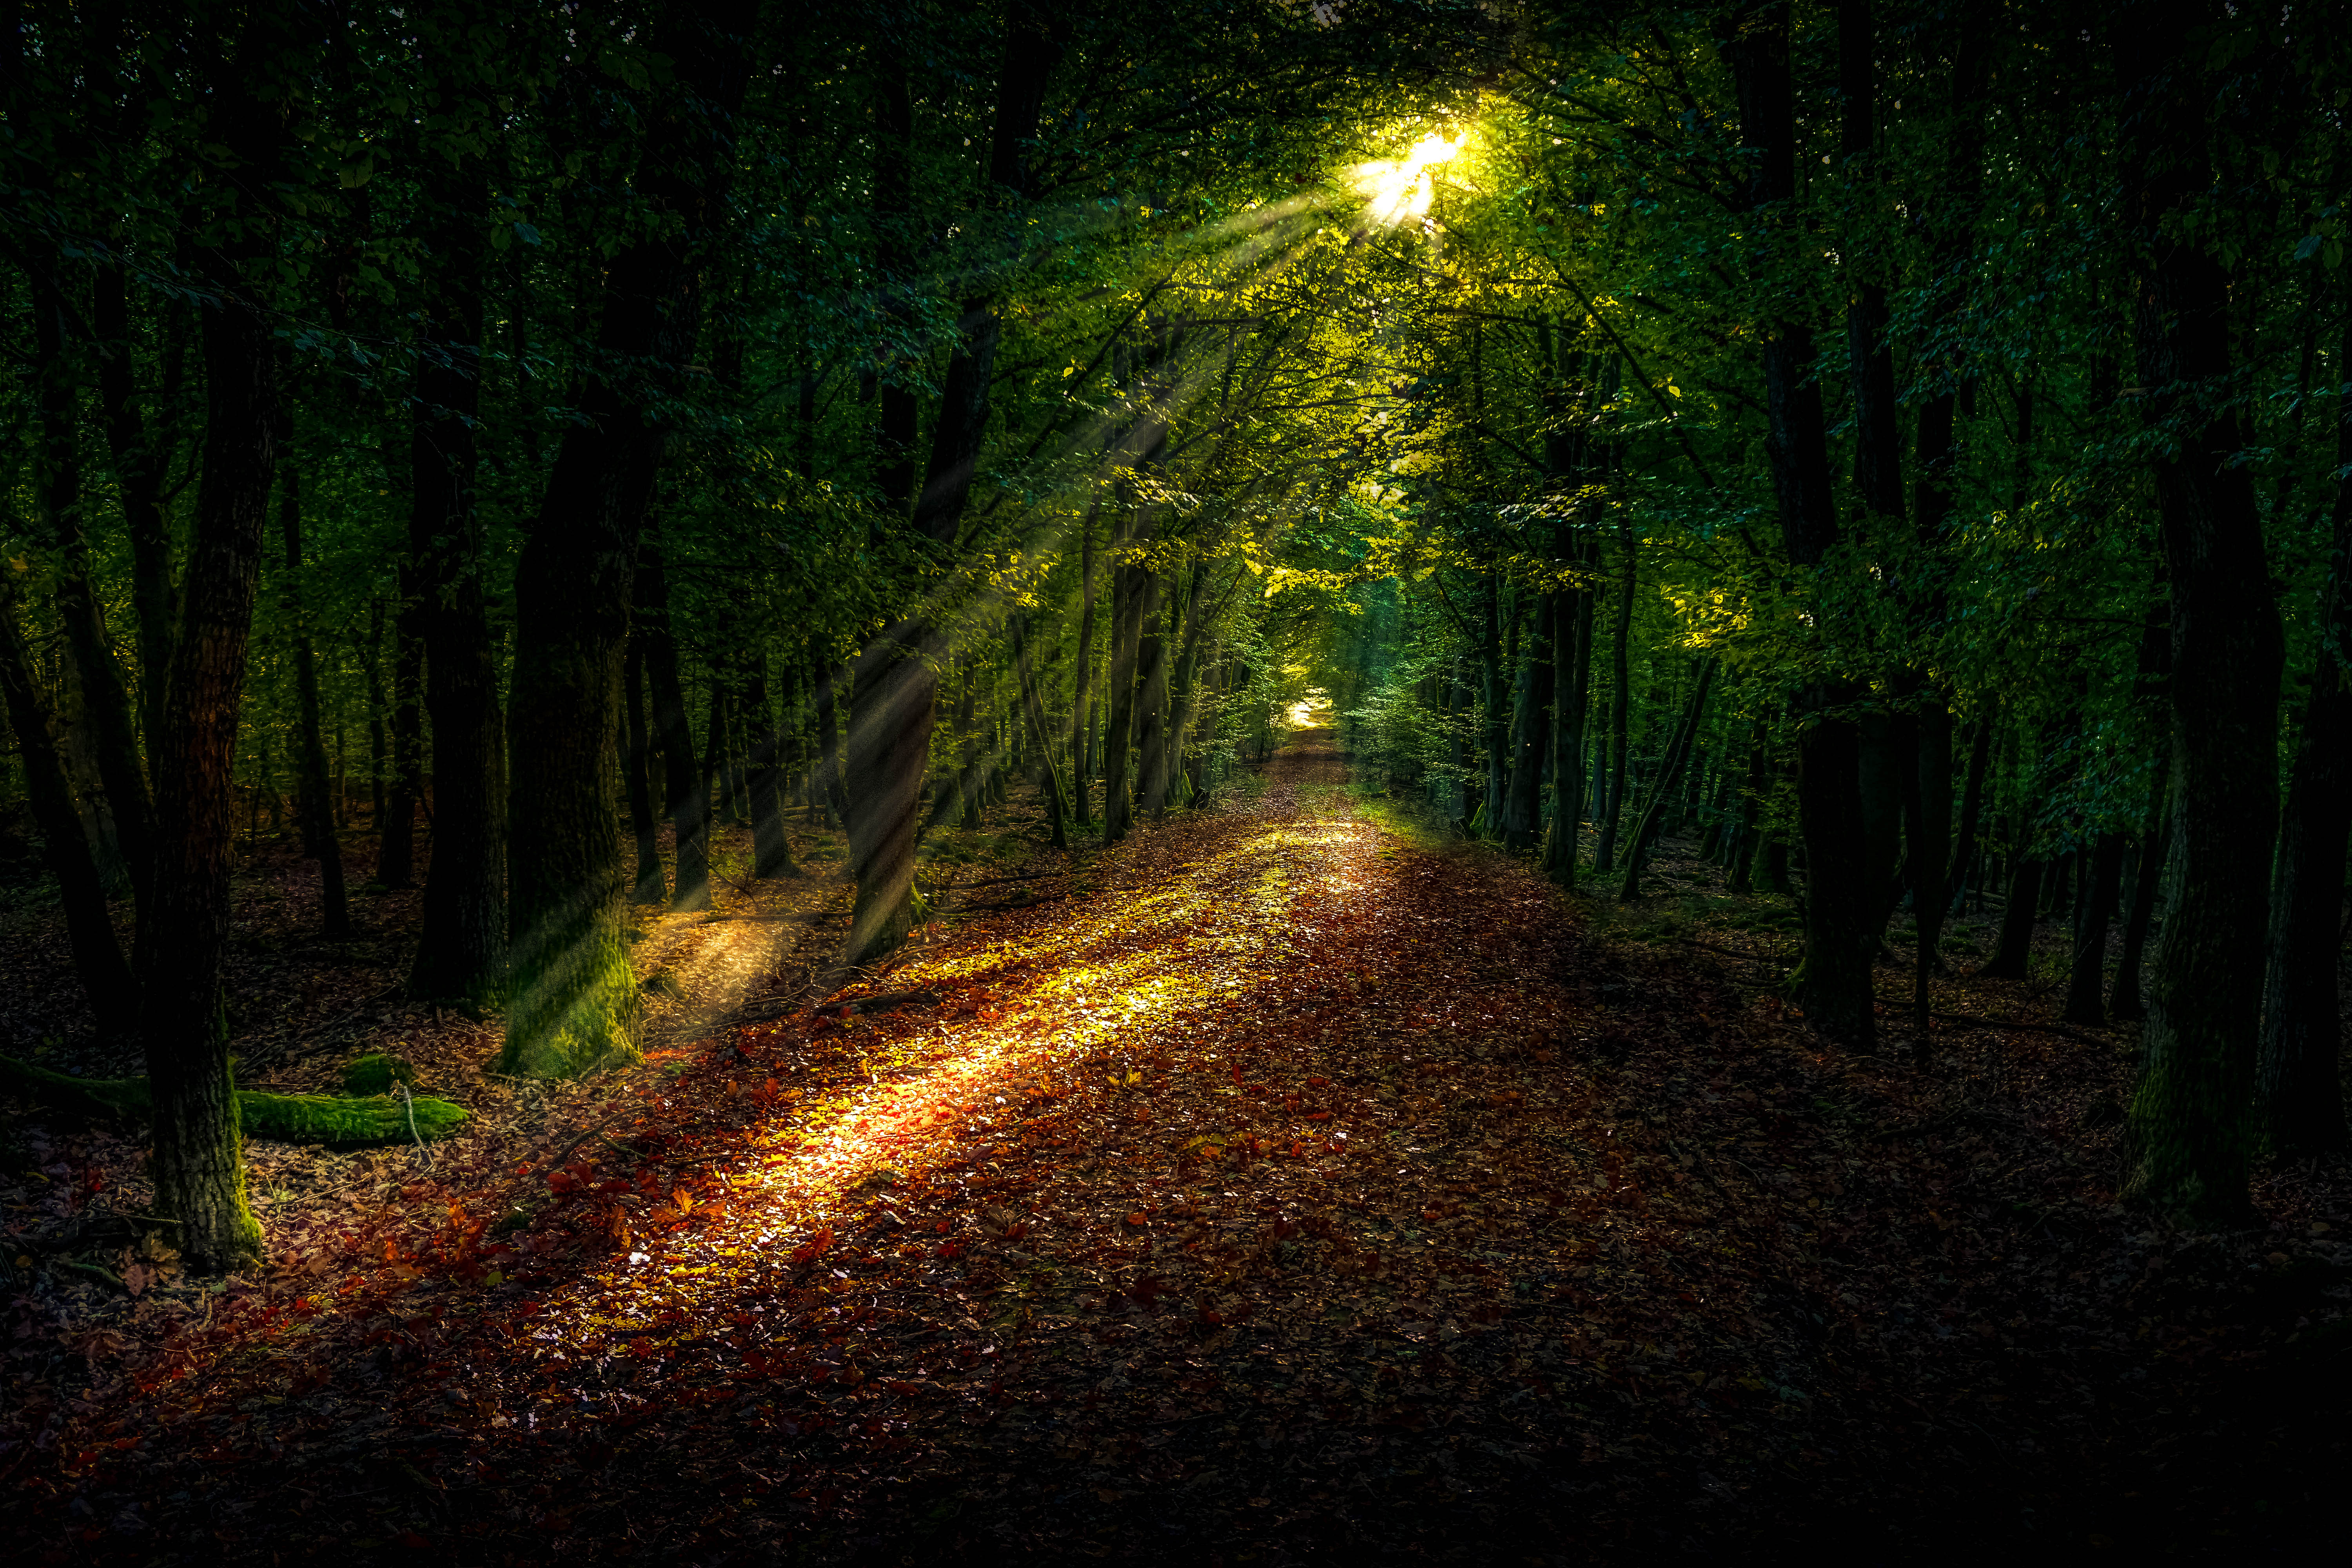 68098 free wallpaper 540x960 for phone, download images Nature, Autumn, Forest, Path, Sunlight 540x960 for mobile